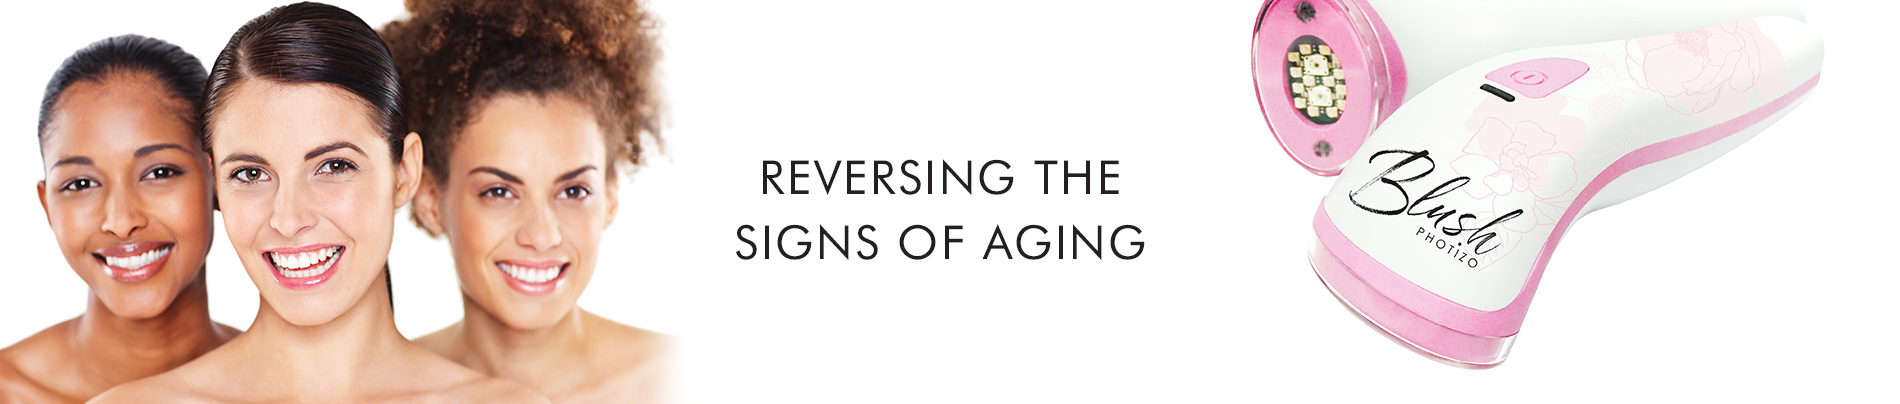 Reverse Signs Of Aging